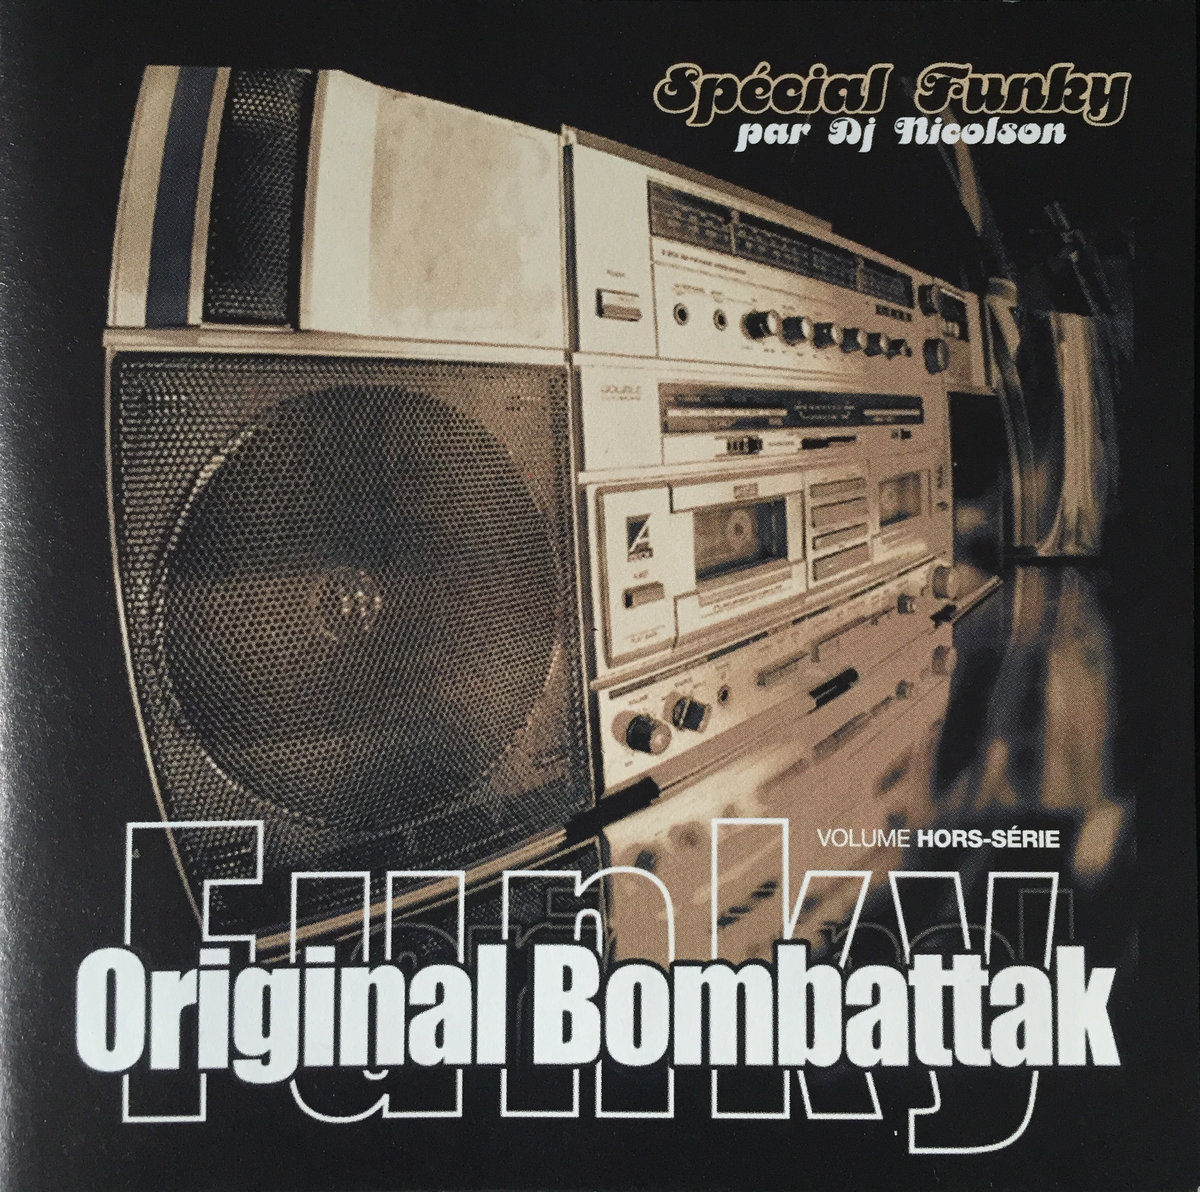 original bombattak vol 1